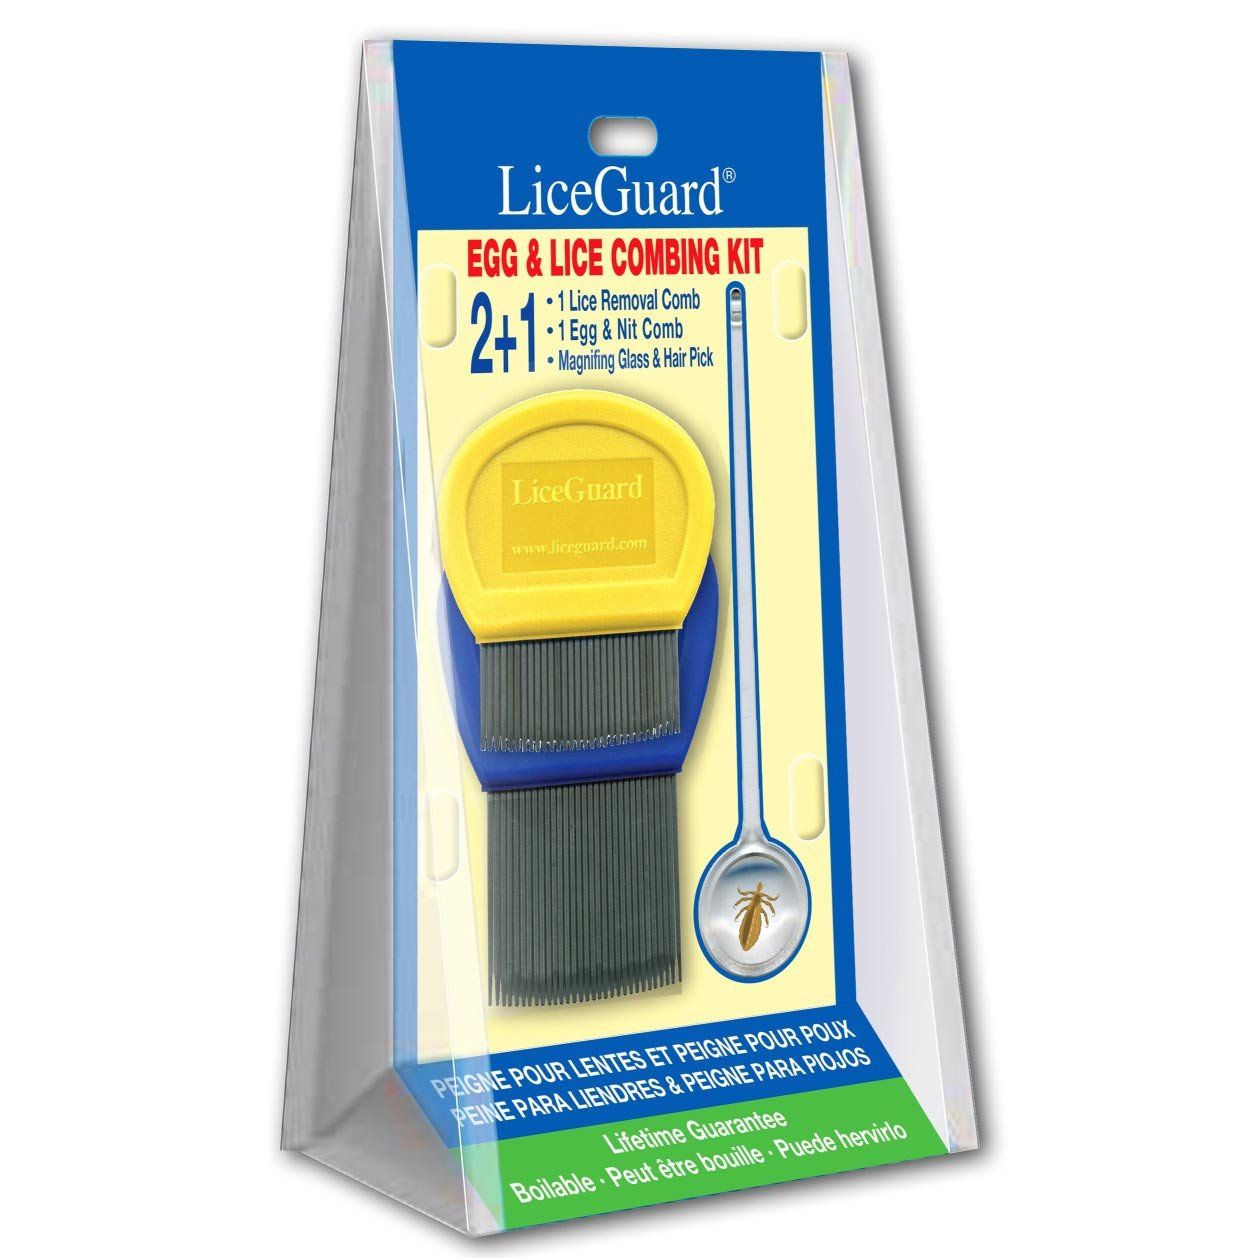 LiceGuard Lice & Egg Combing Kit by LiceGuard